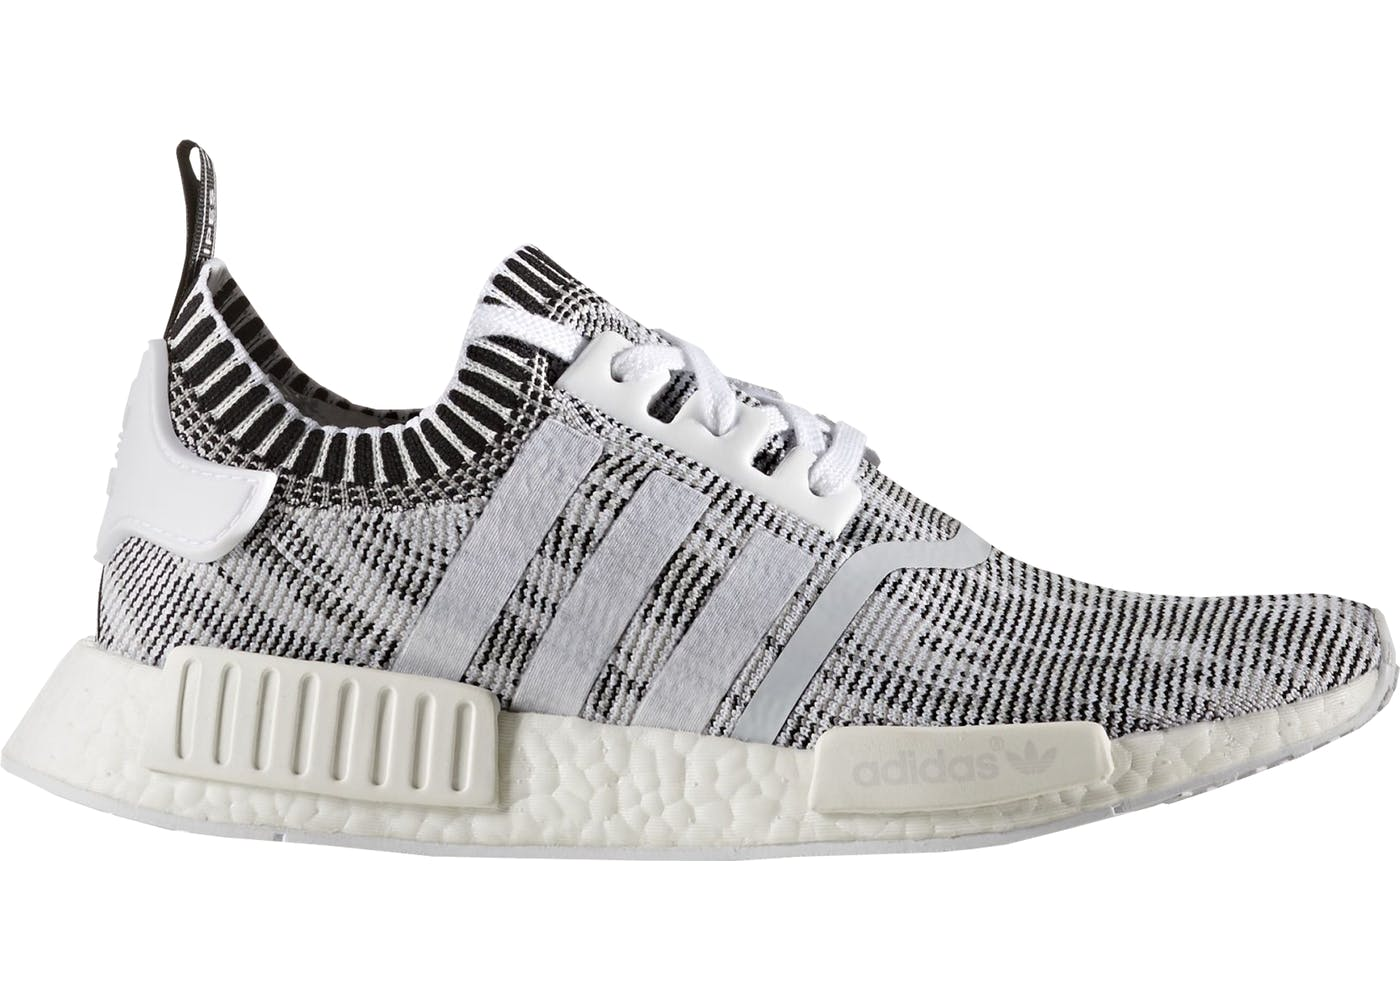 fc763754e129d Buy Adidas NMD R1 Primeknit Online 2017, we offer Cheapest Adidas NMD R1  Primeknit Boost Sale Online for Runner